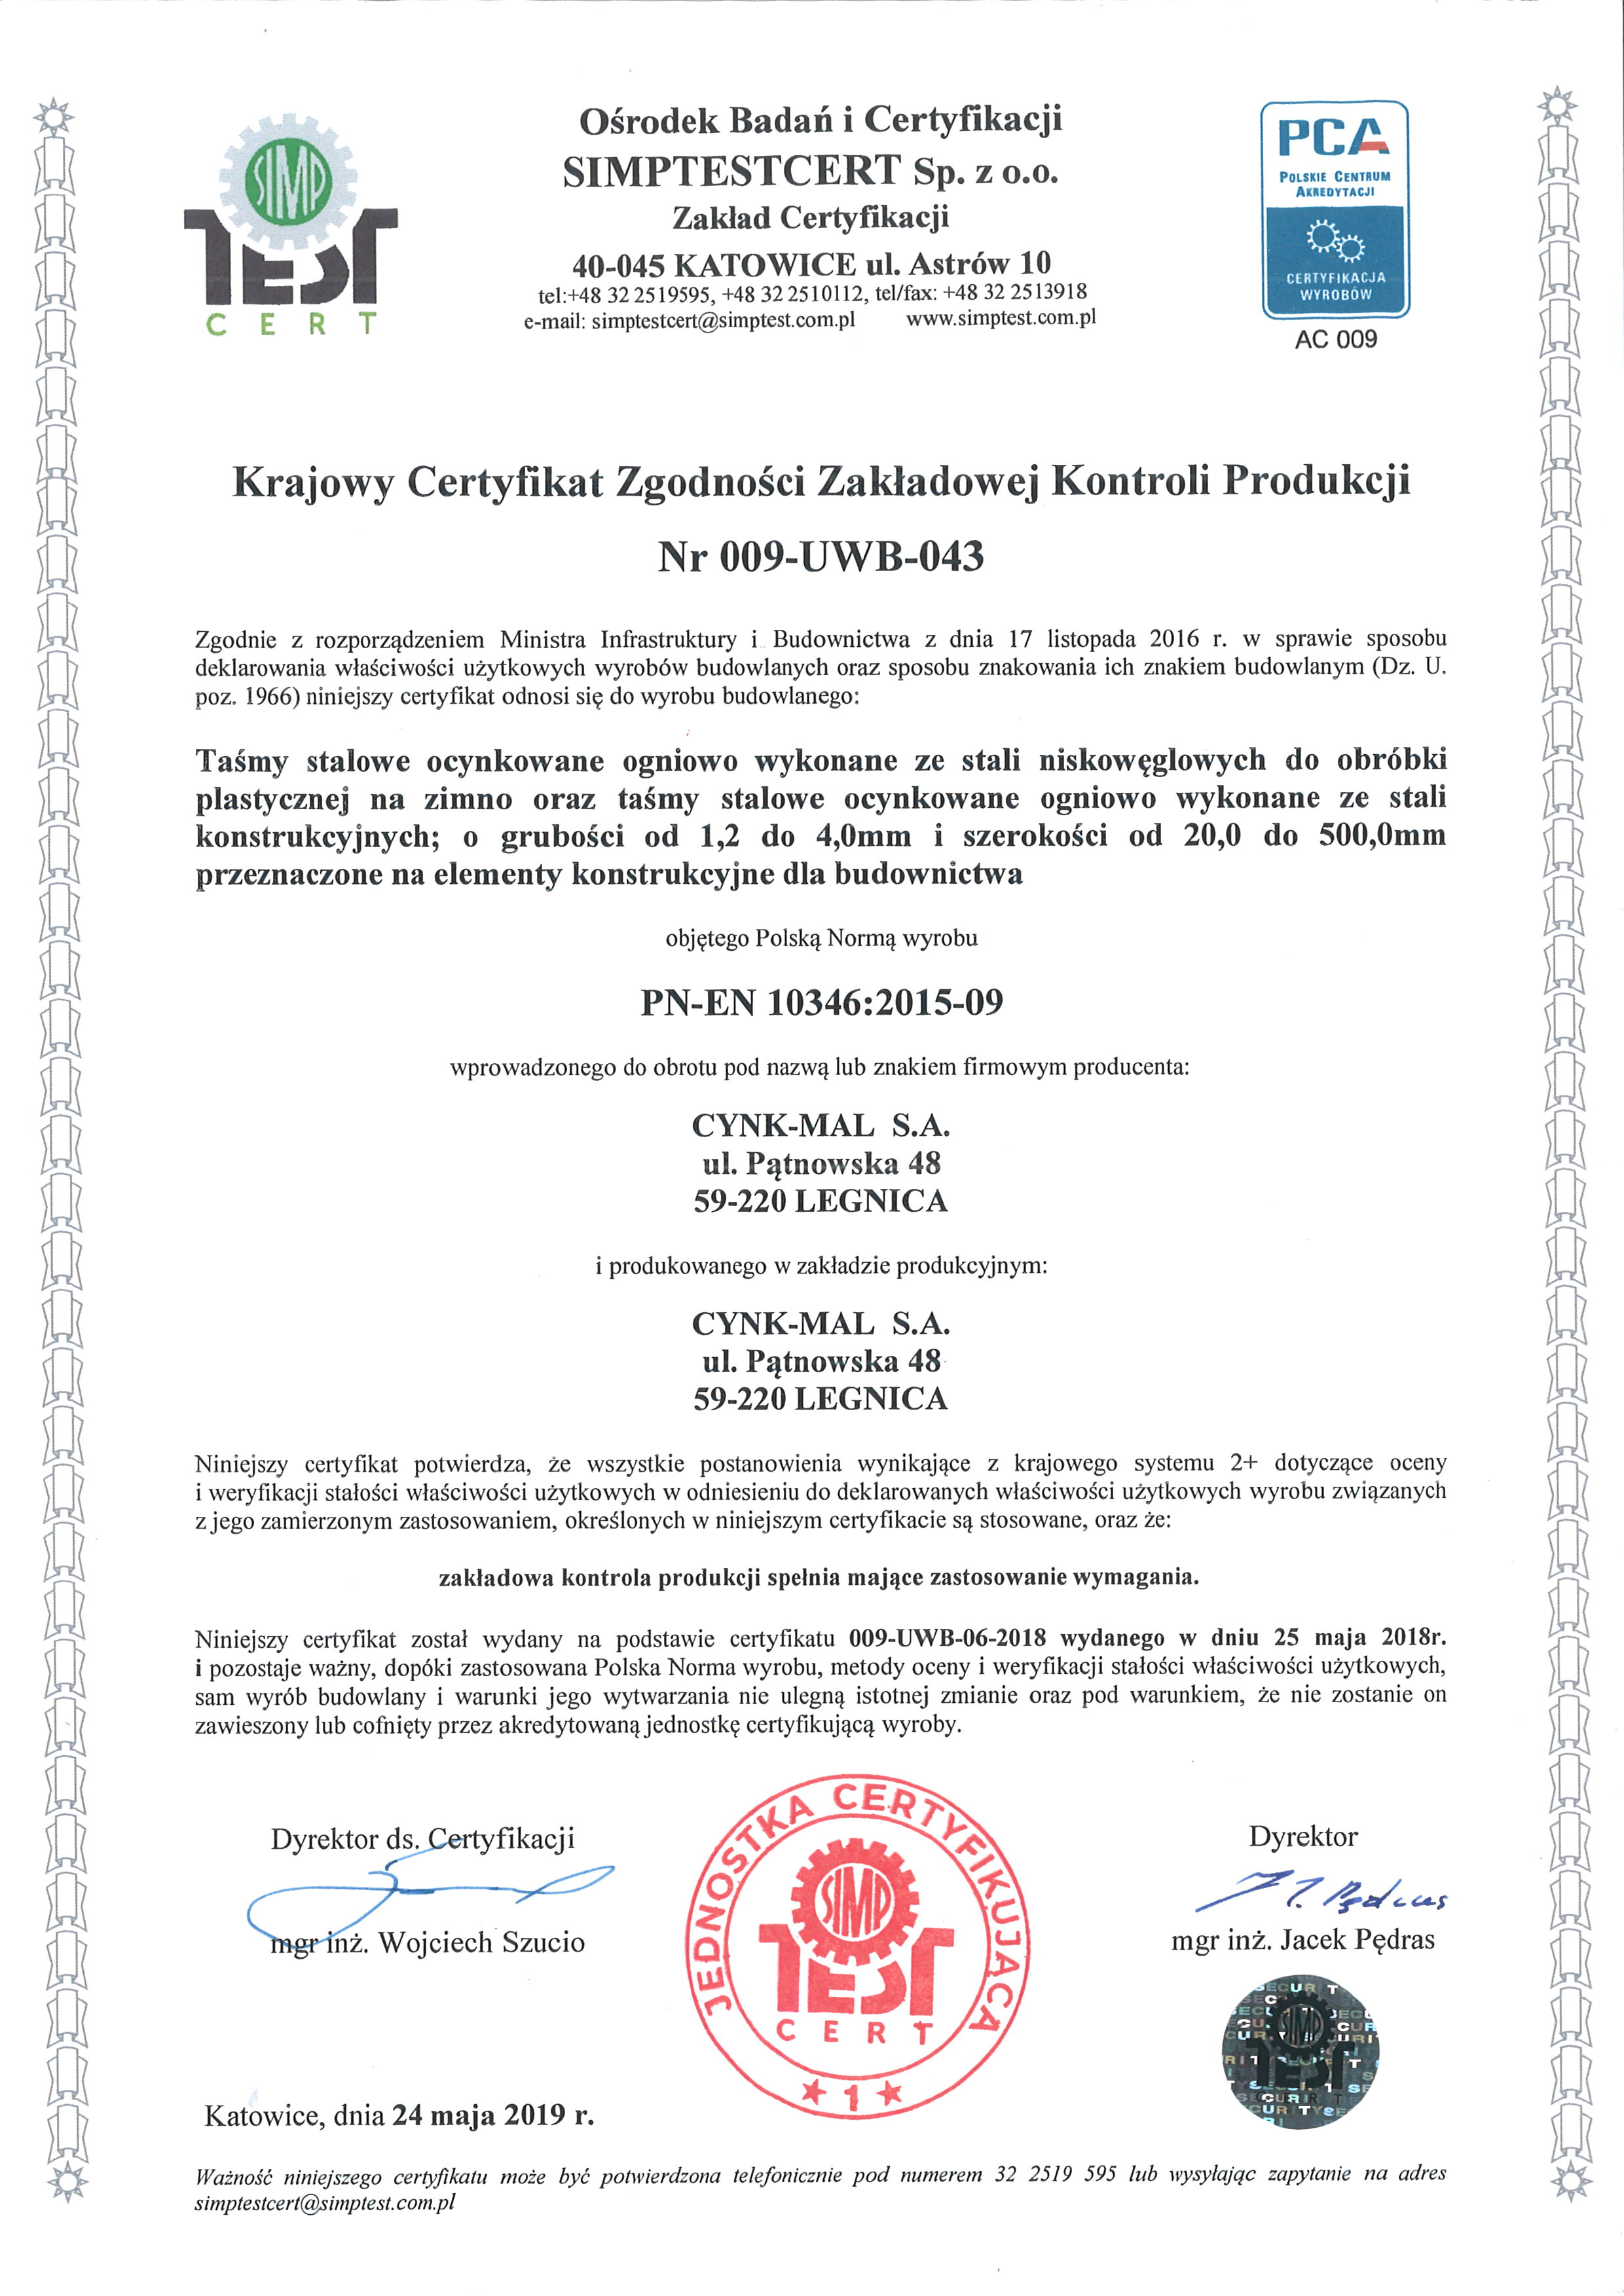 Factory Production Control Certificate